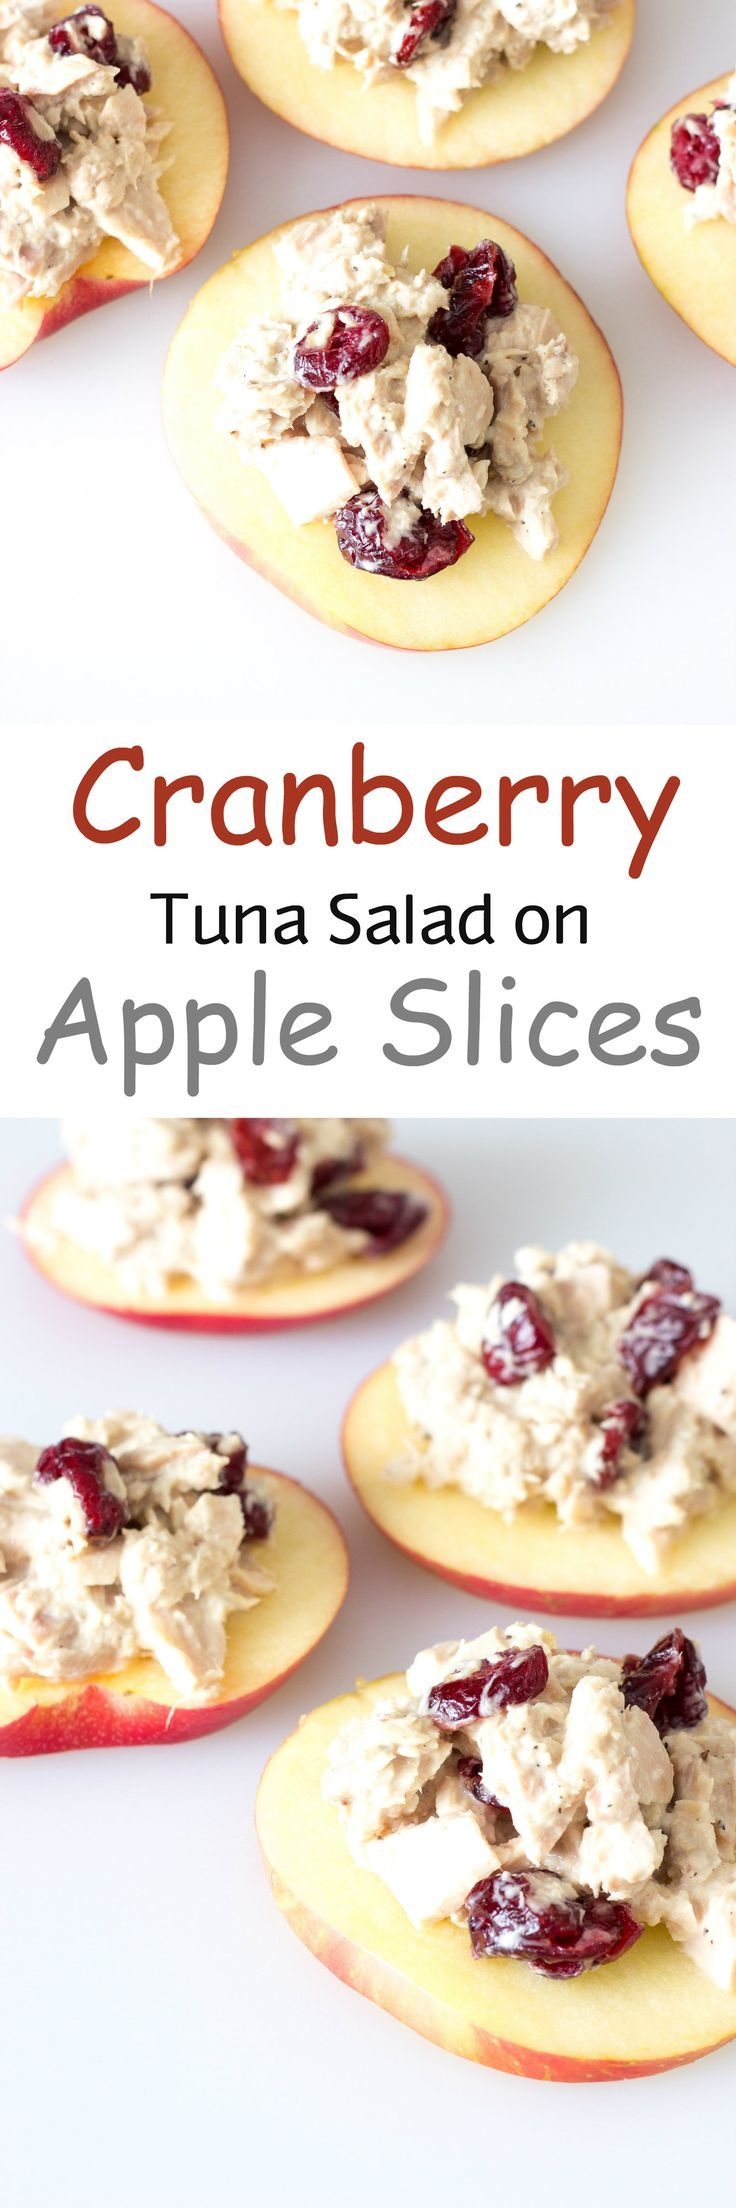 Cranberry Tuna Salad on Apple Slices - Only 5 minutes to make this quick #healthy recipe, perfect for #lunch